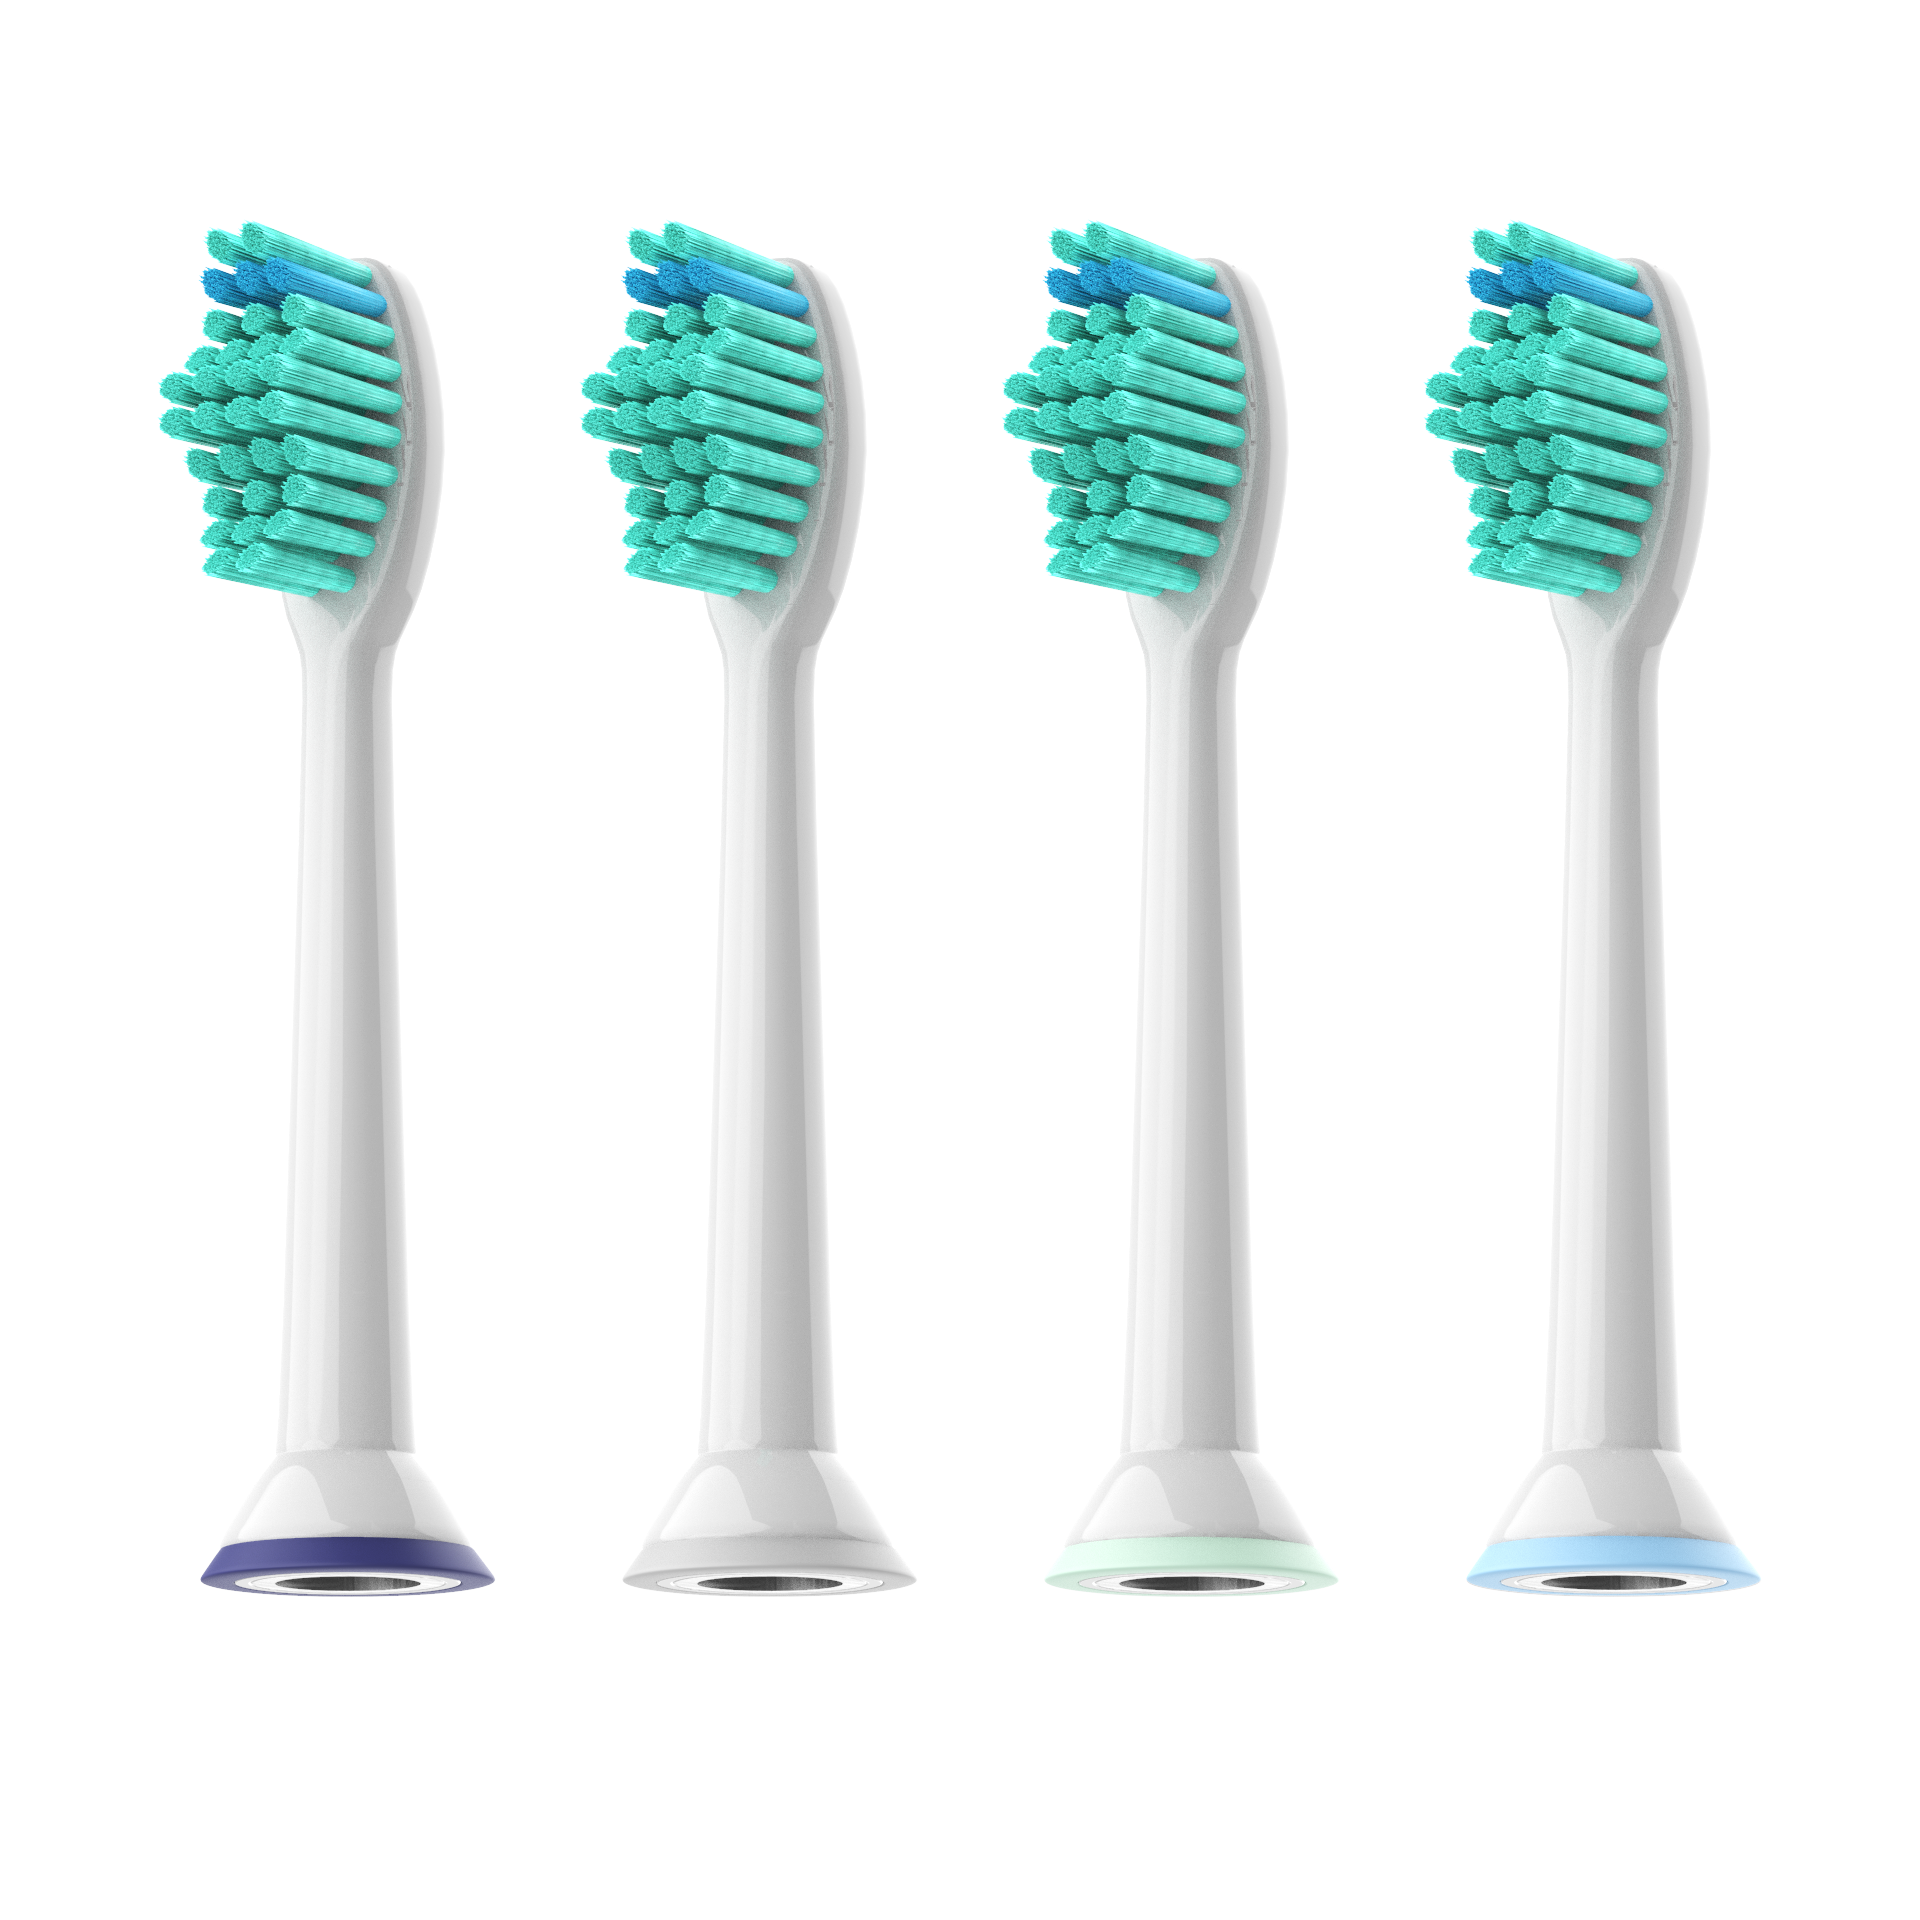 4pcs Toothbrush Heads for Philips Sonicare ProResults HX6013//66 HX6530 HX9340